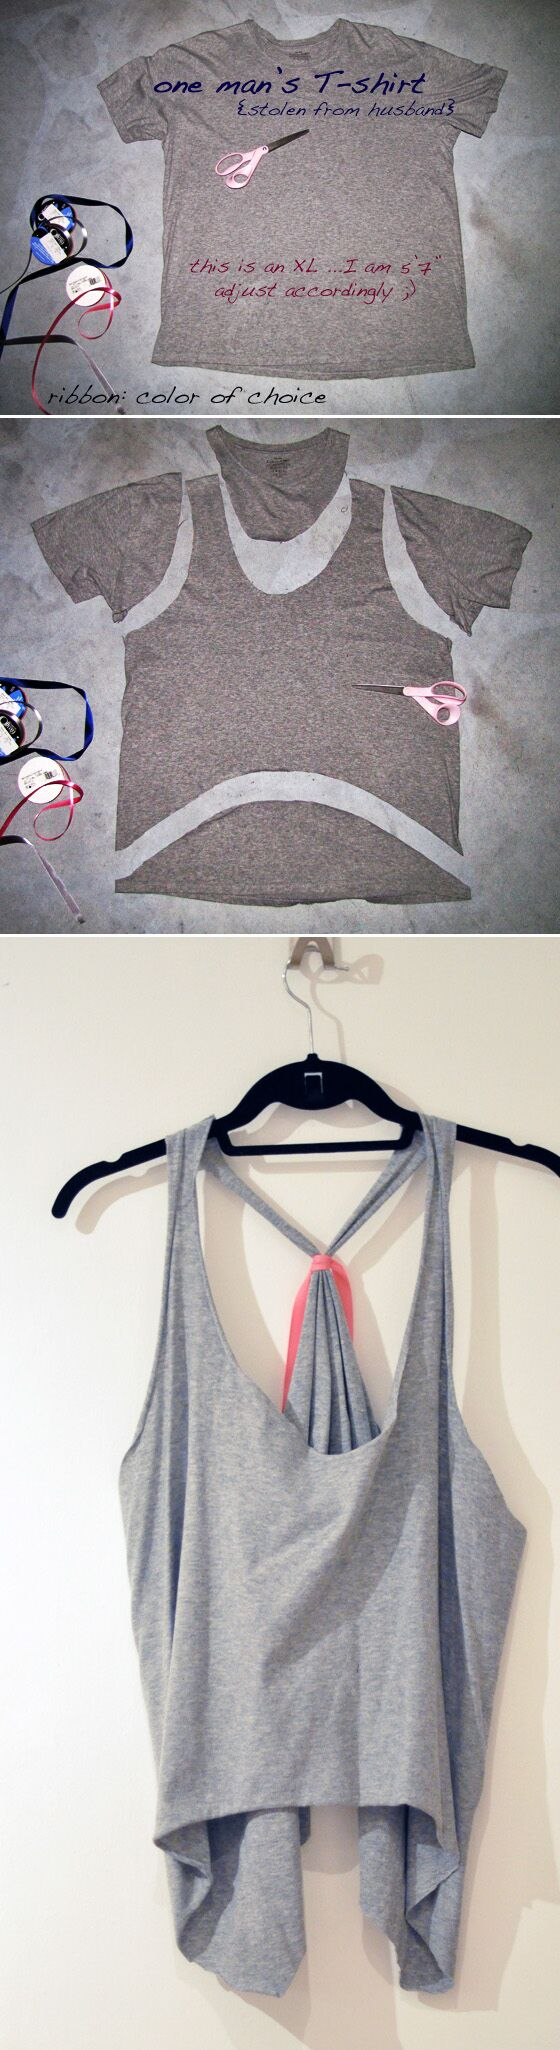 How To Redesign Old Clothes During Your Corona Virus Self Isolation